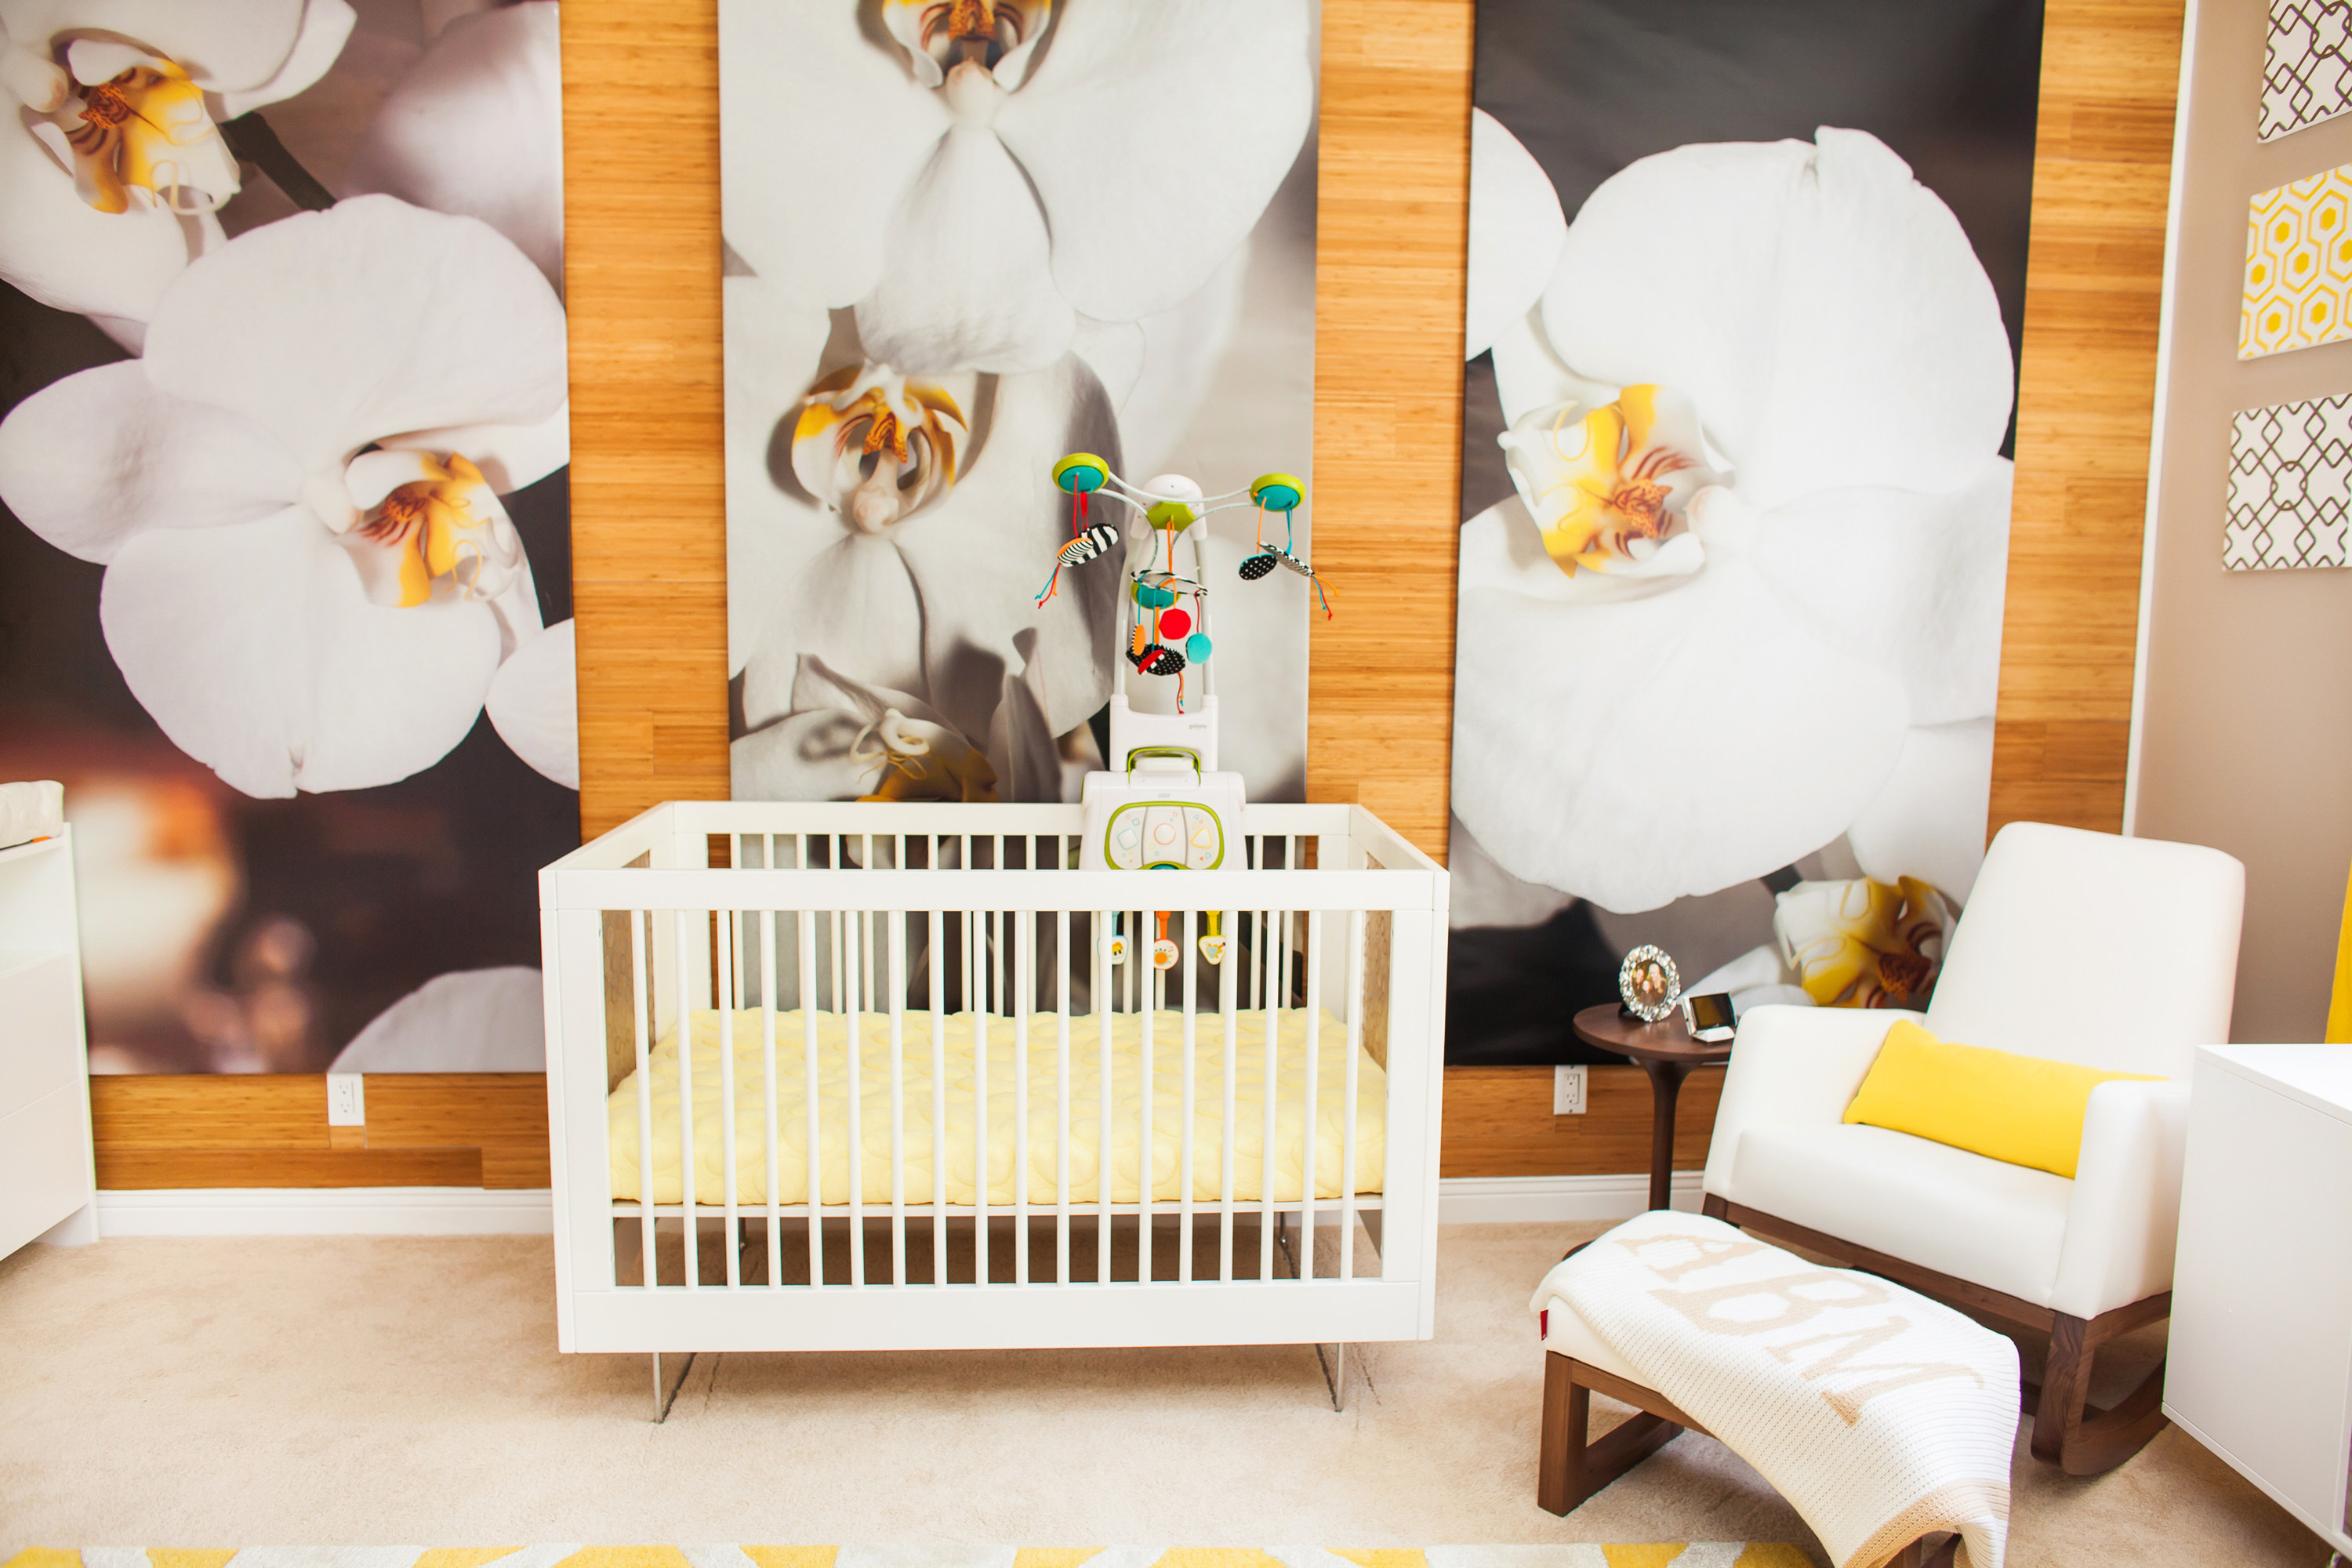 Kendra Wilkinson's Modern Nature-Inspired Nursery